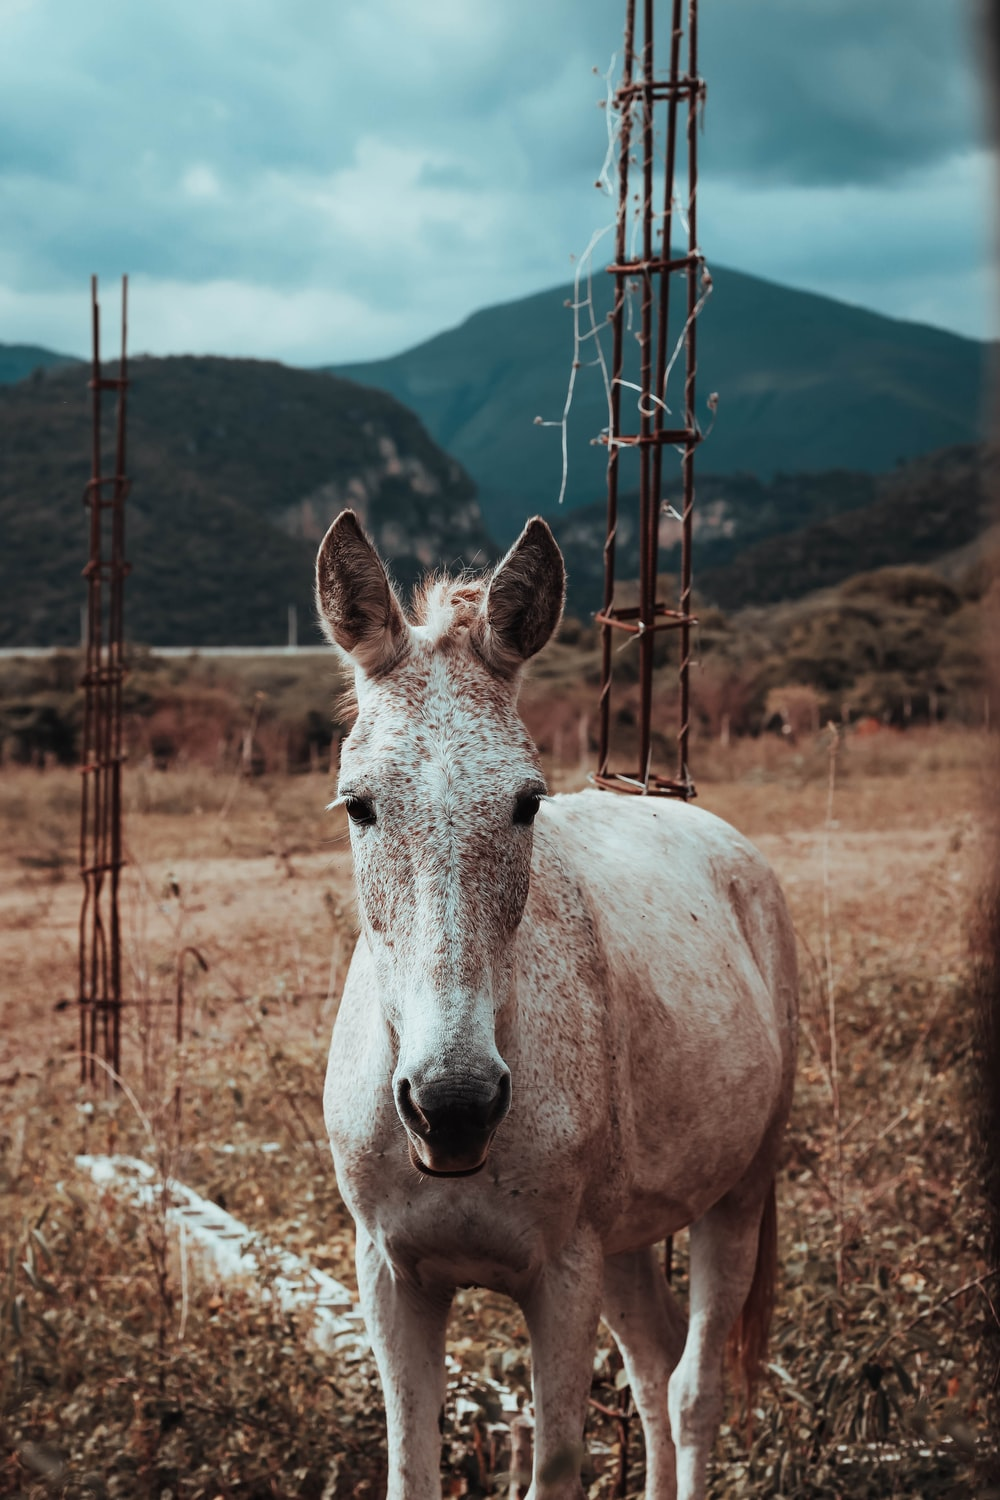 white and brown horse on brown grass field during daytime